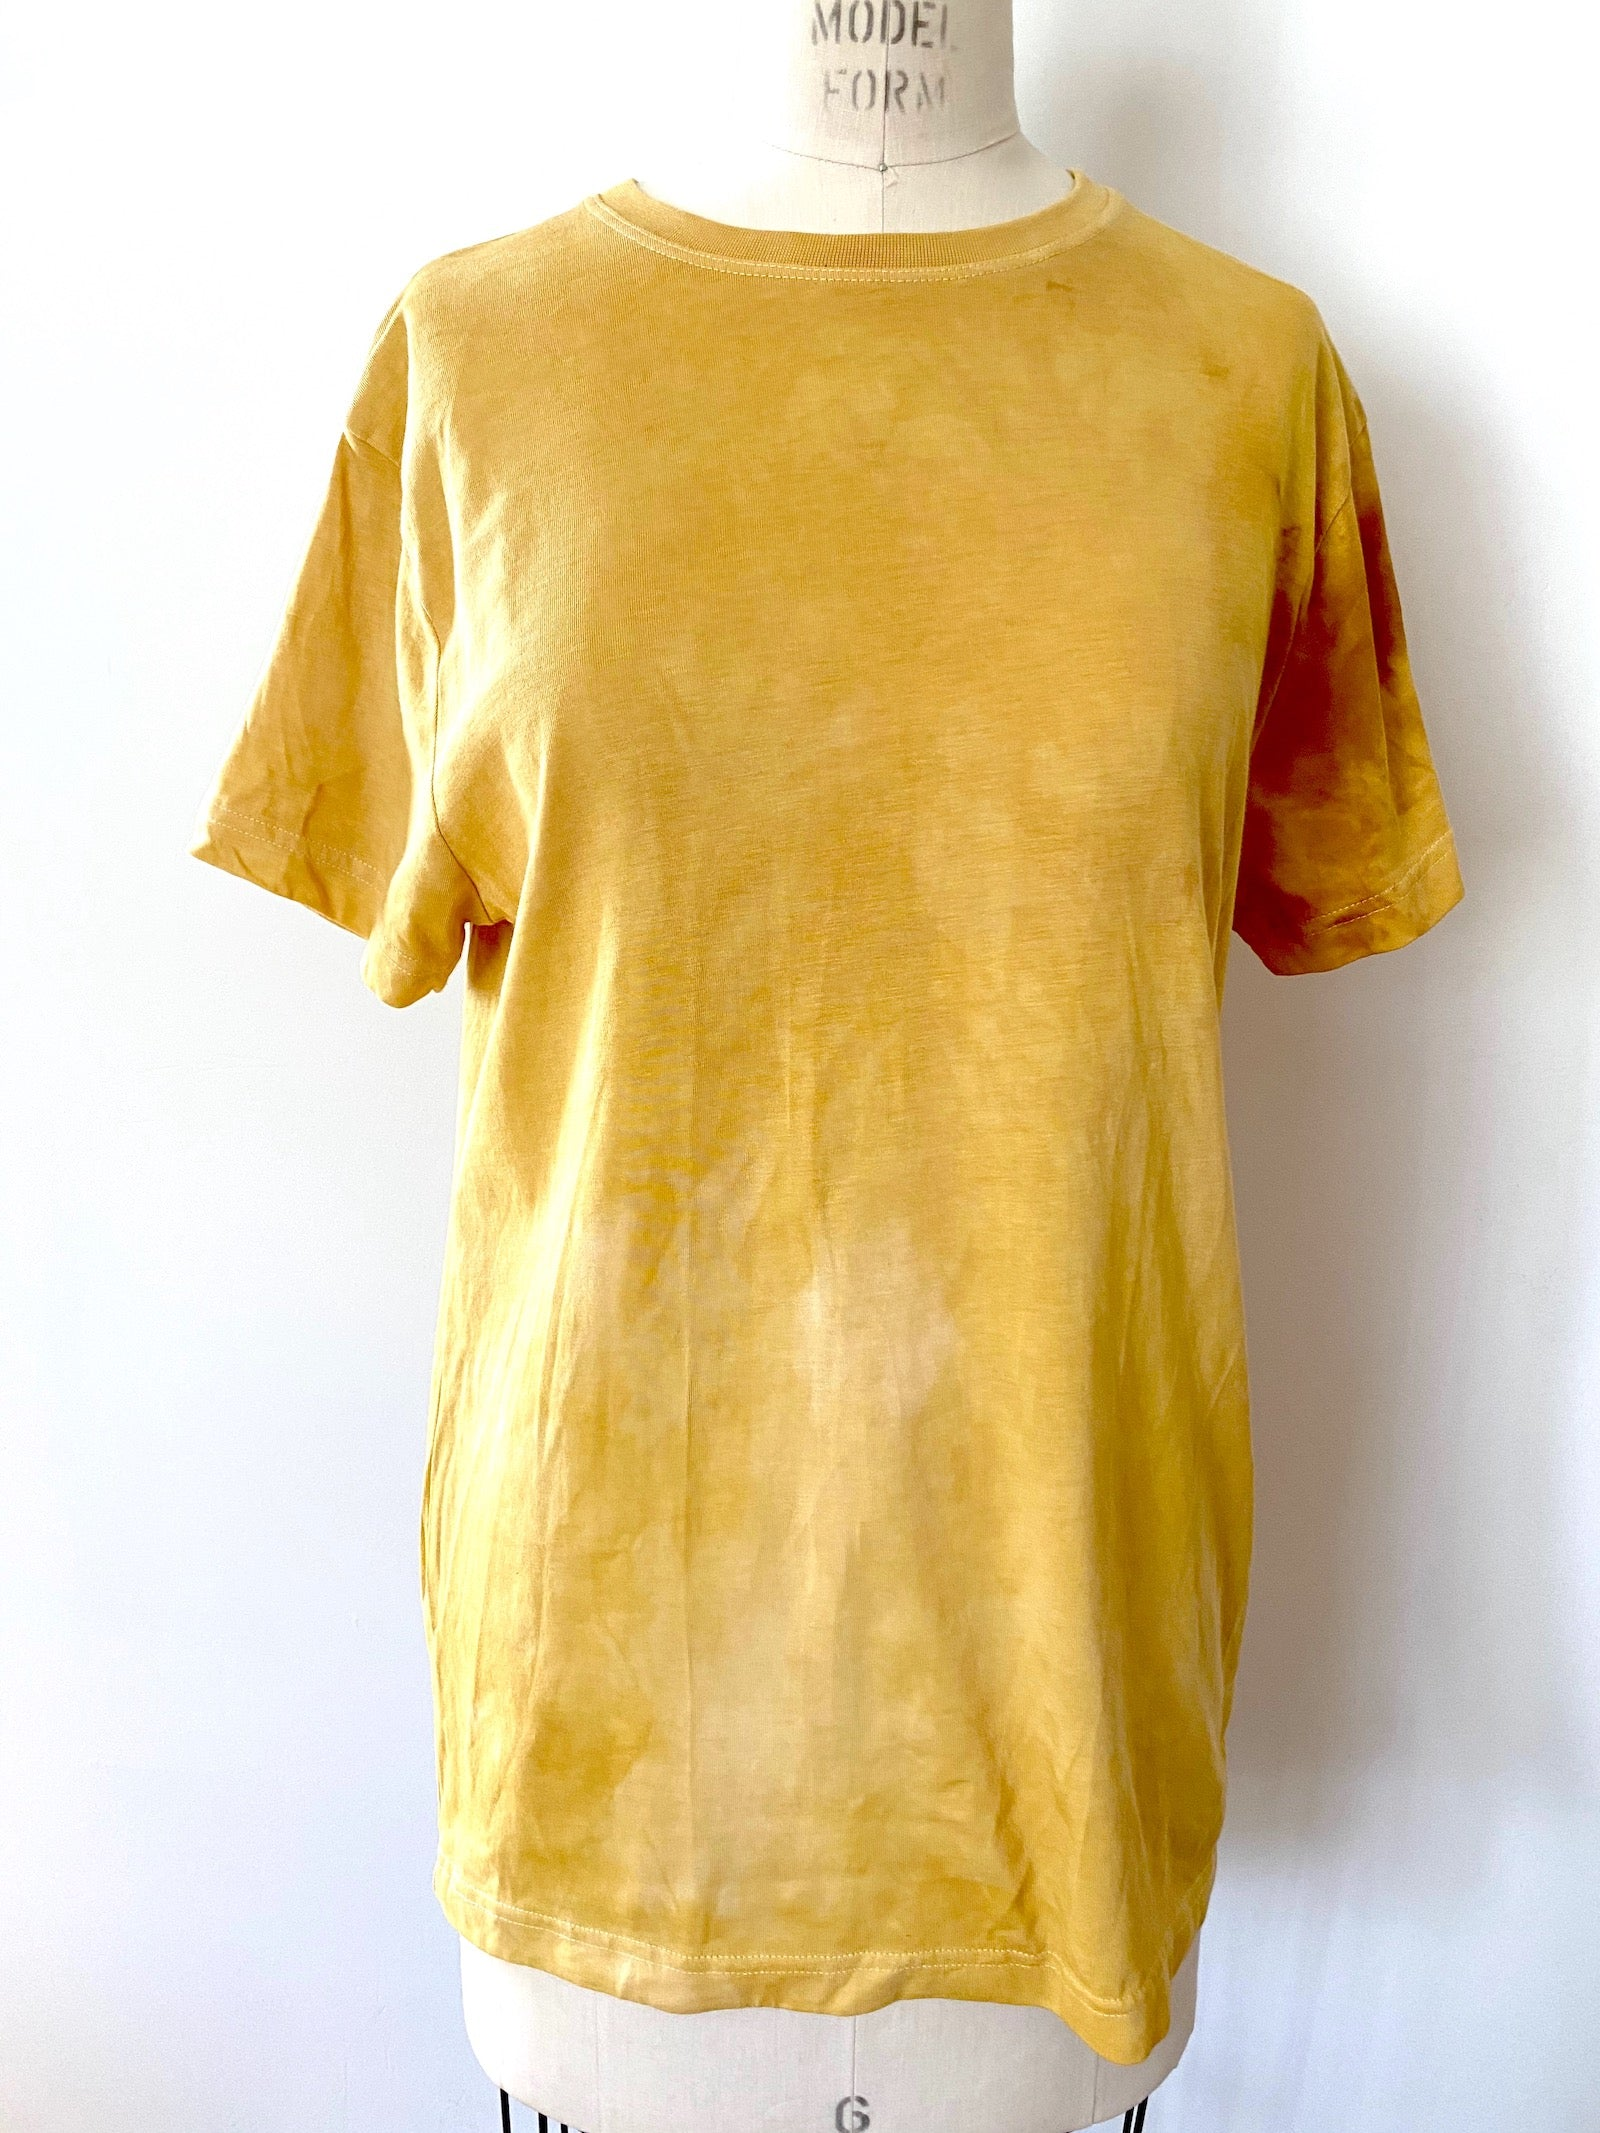 T shirt | For Men & Women | California Grown Cotton | Ultra Soft | Yellow Hand Dyed Solid - Modern Shibori